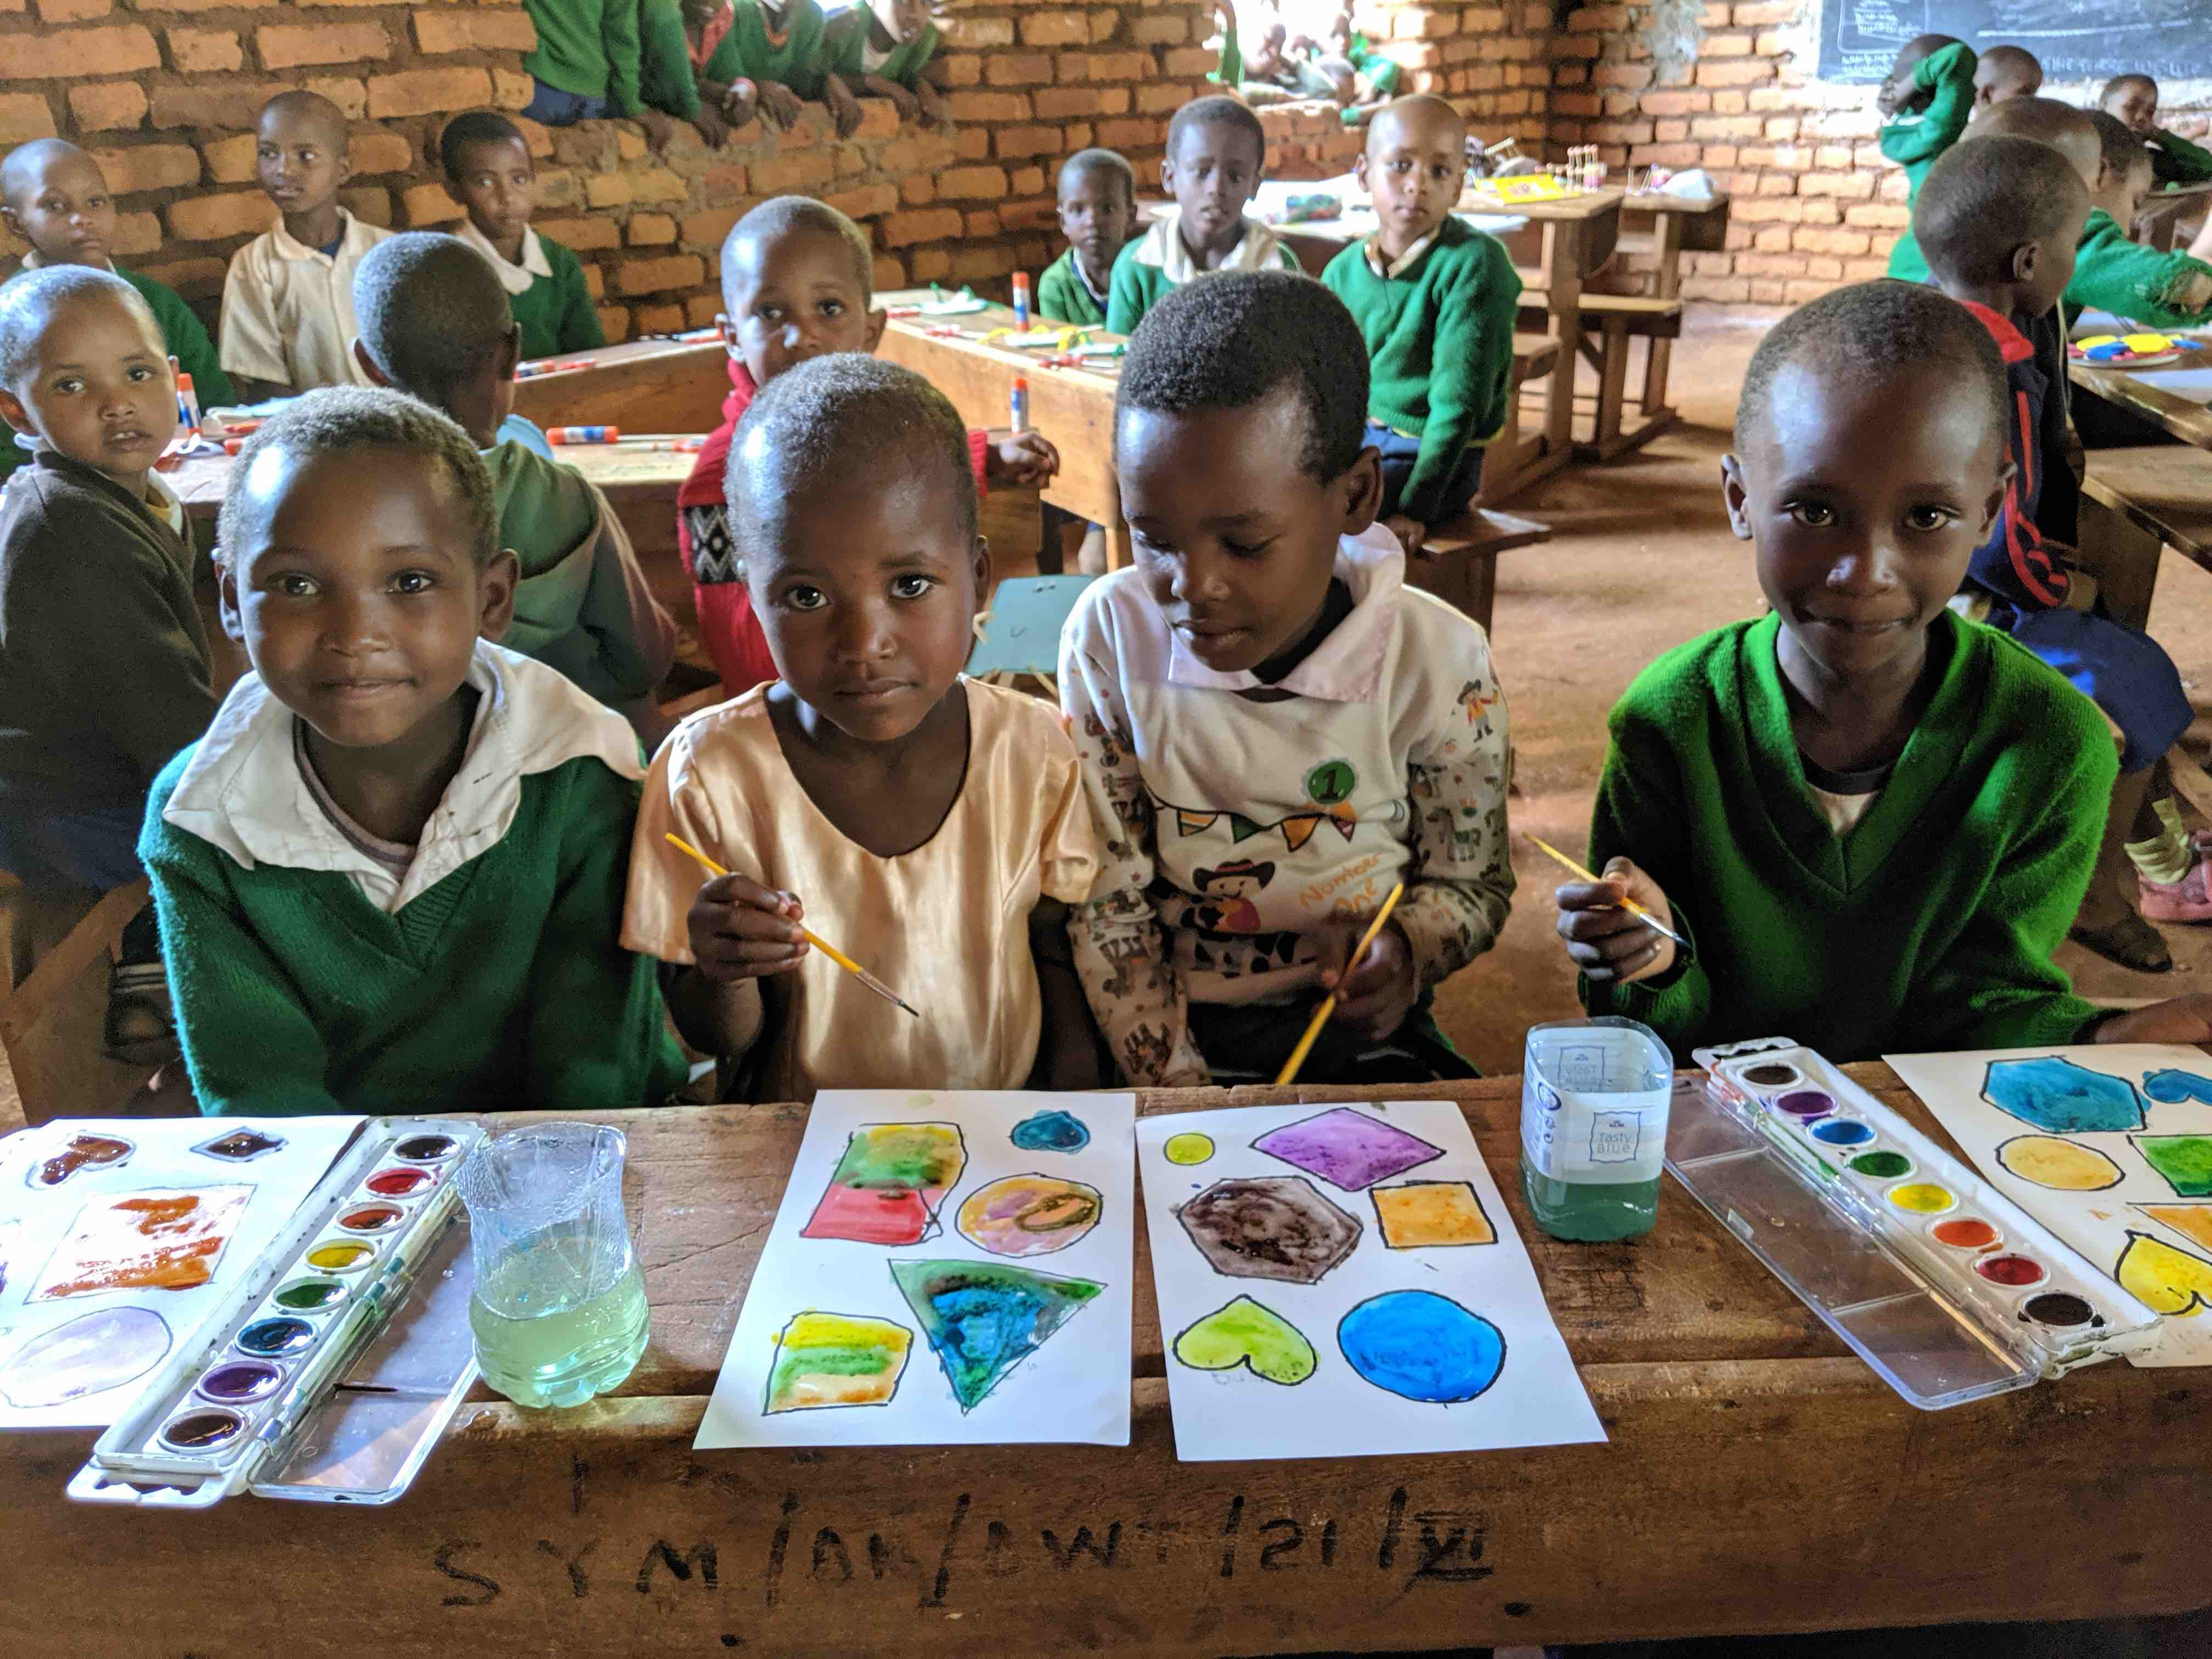 6.1 Projects - Recurring projects - Primary school art class 02-small.jpg